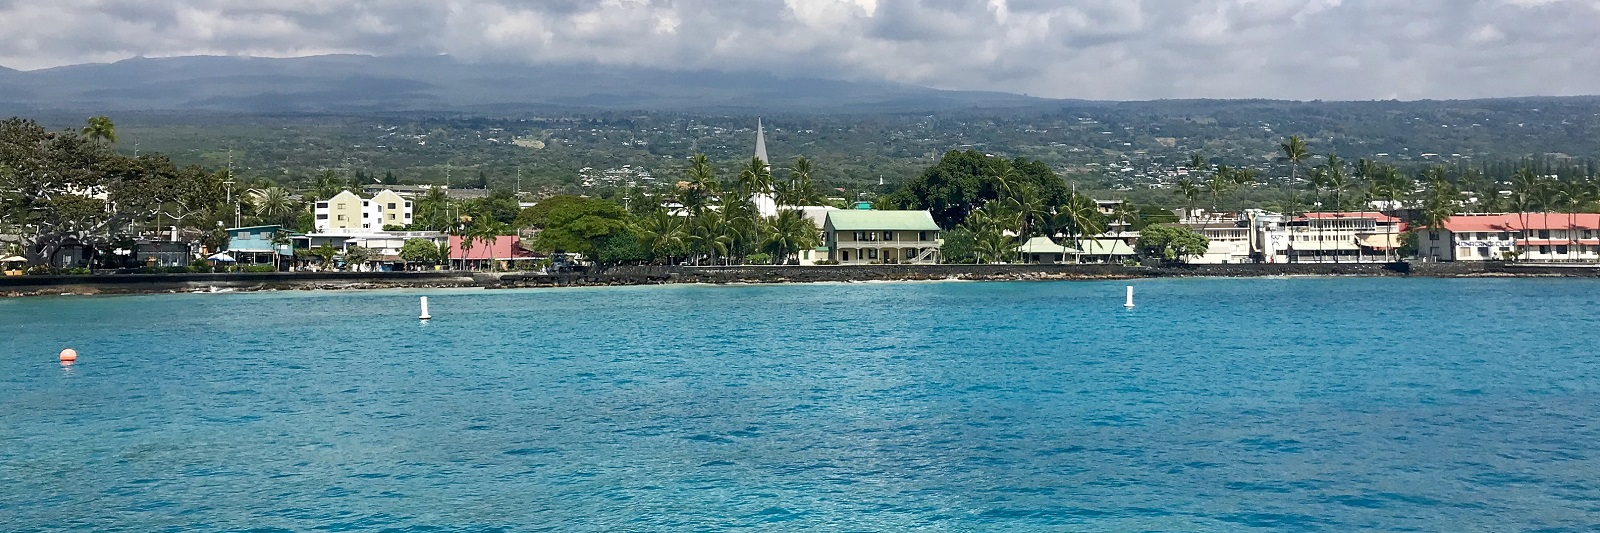 kona-view-from-pier.jpg